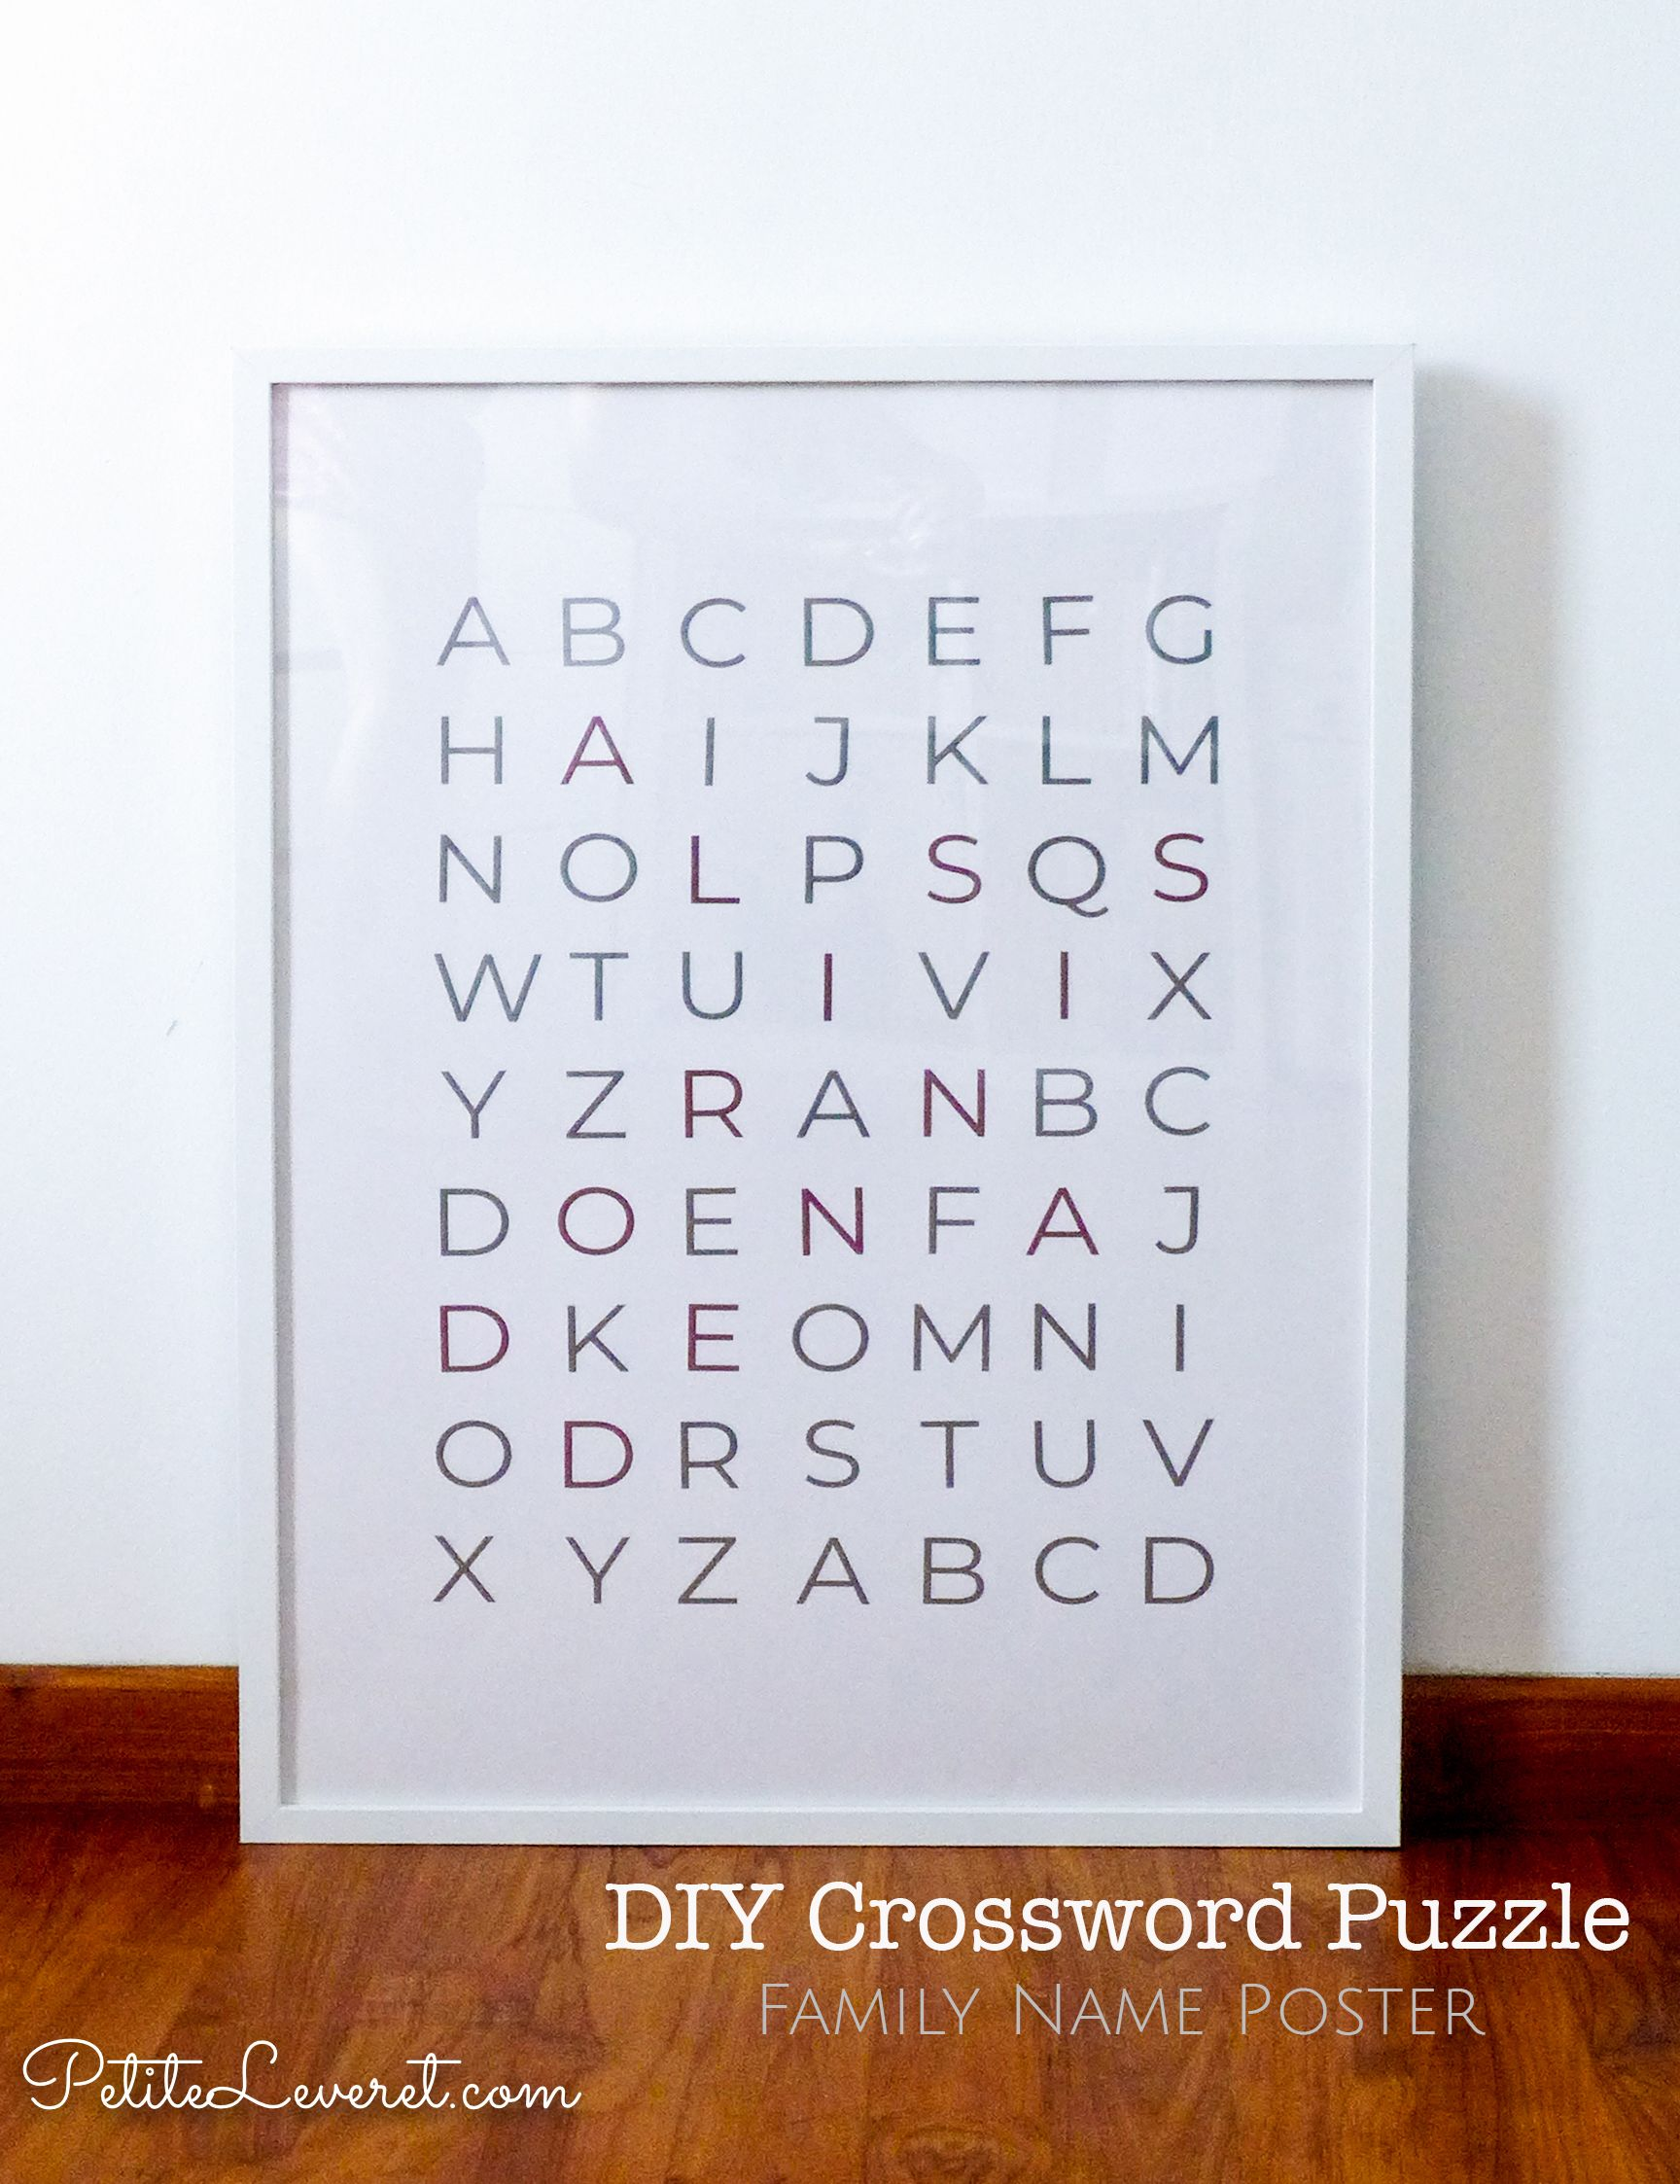 Diy Crossword Puzzle Family Name Poster Petite Leveret